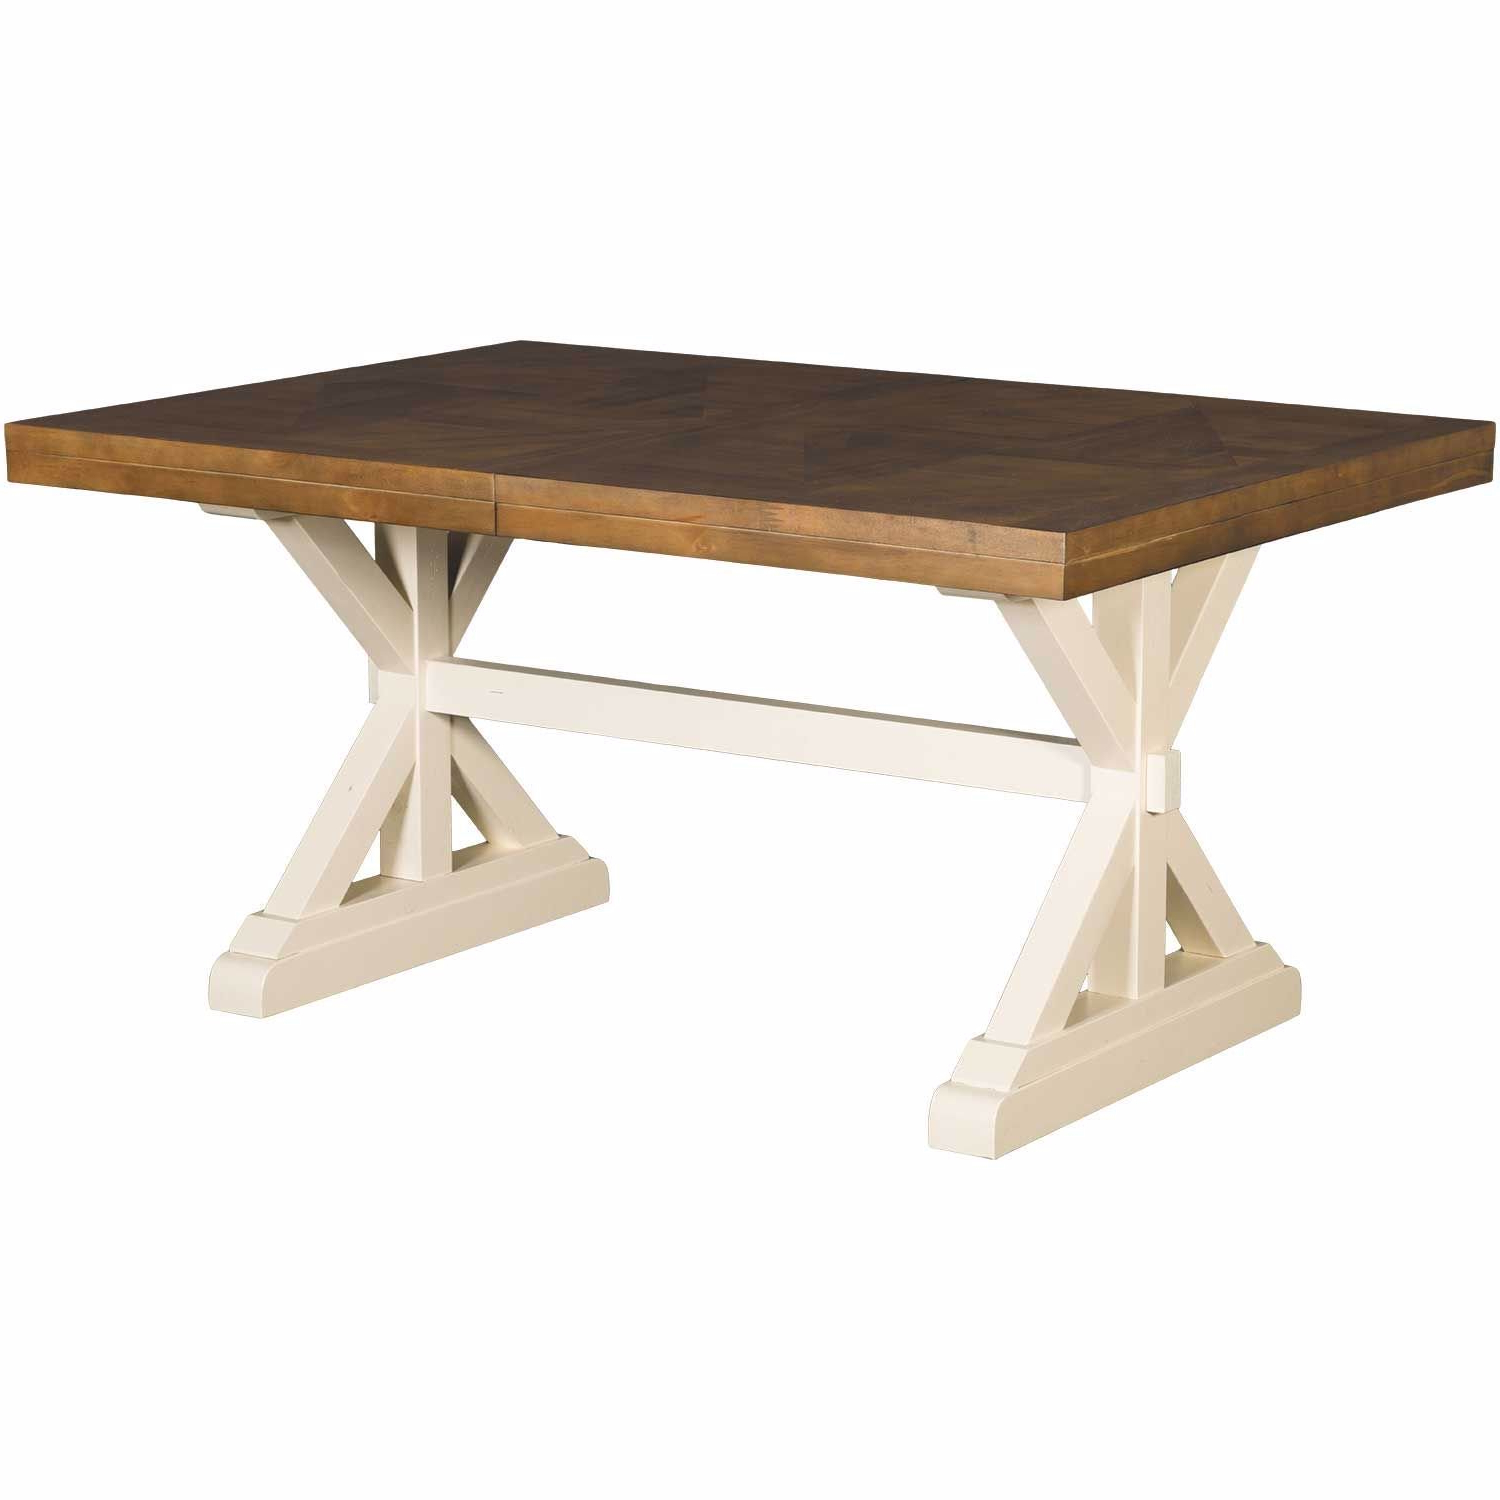 Rectangular Dining Tables Pertaining To Well Known Park Creek Rectangular Dining Table (View 17 of 30)